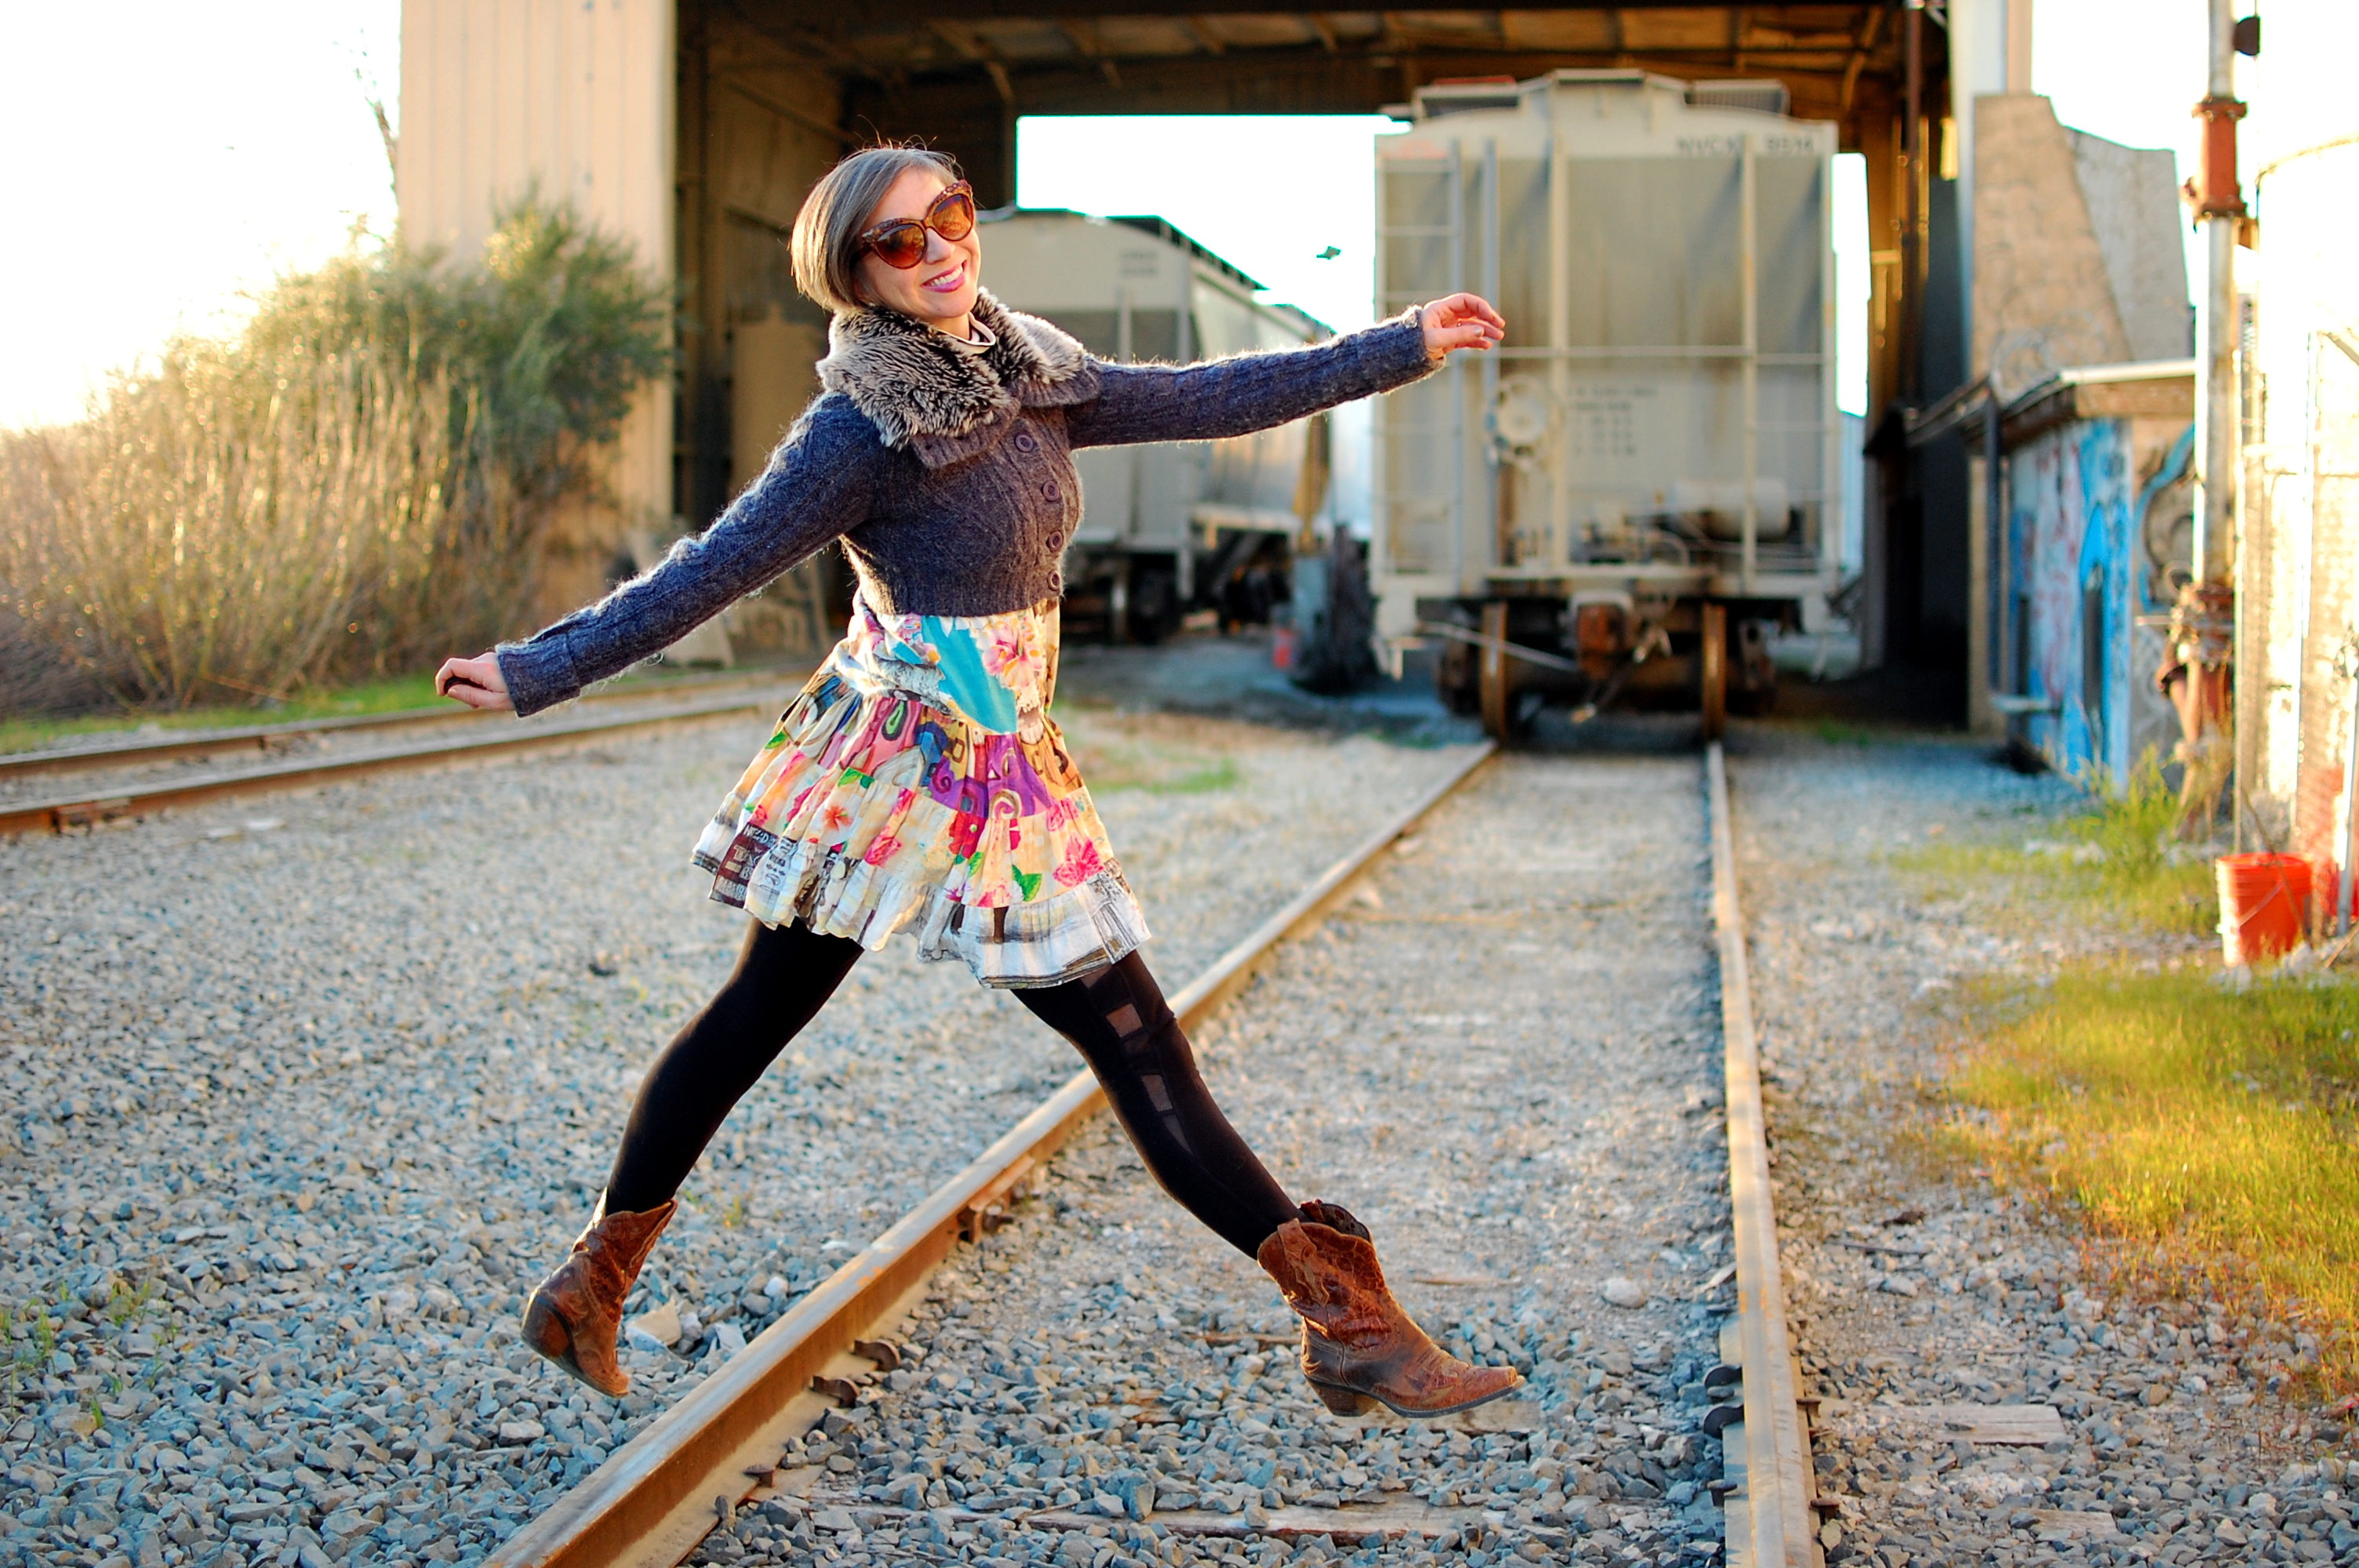 jams world railroad tracks western boots ootd outfit whatiwore2day